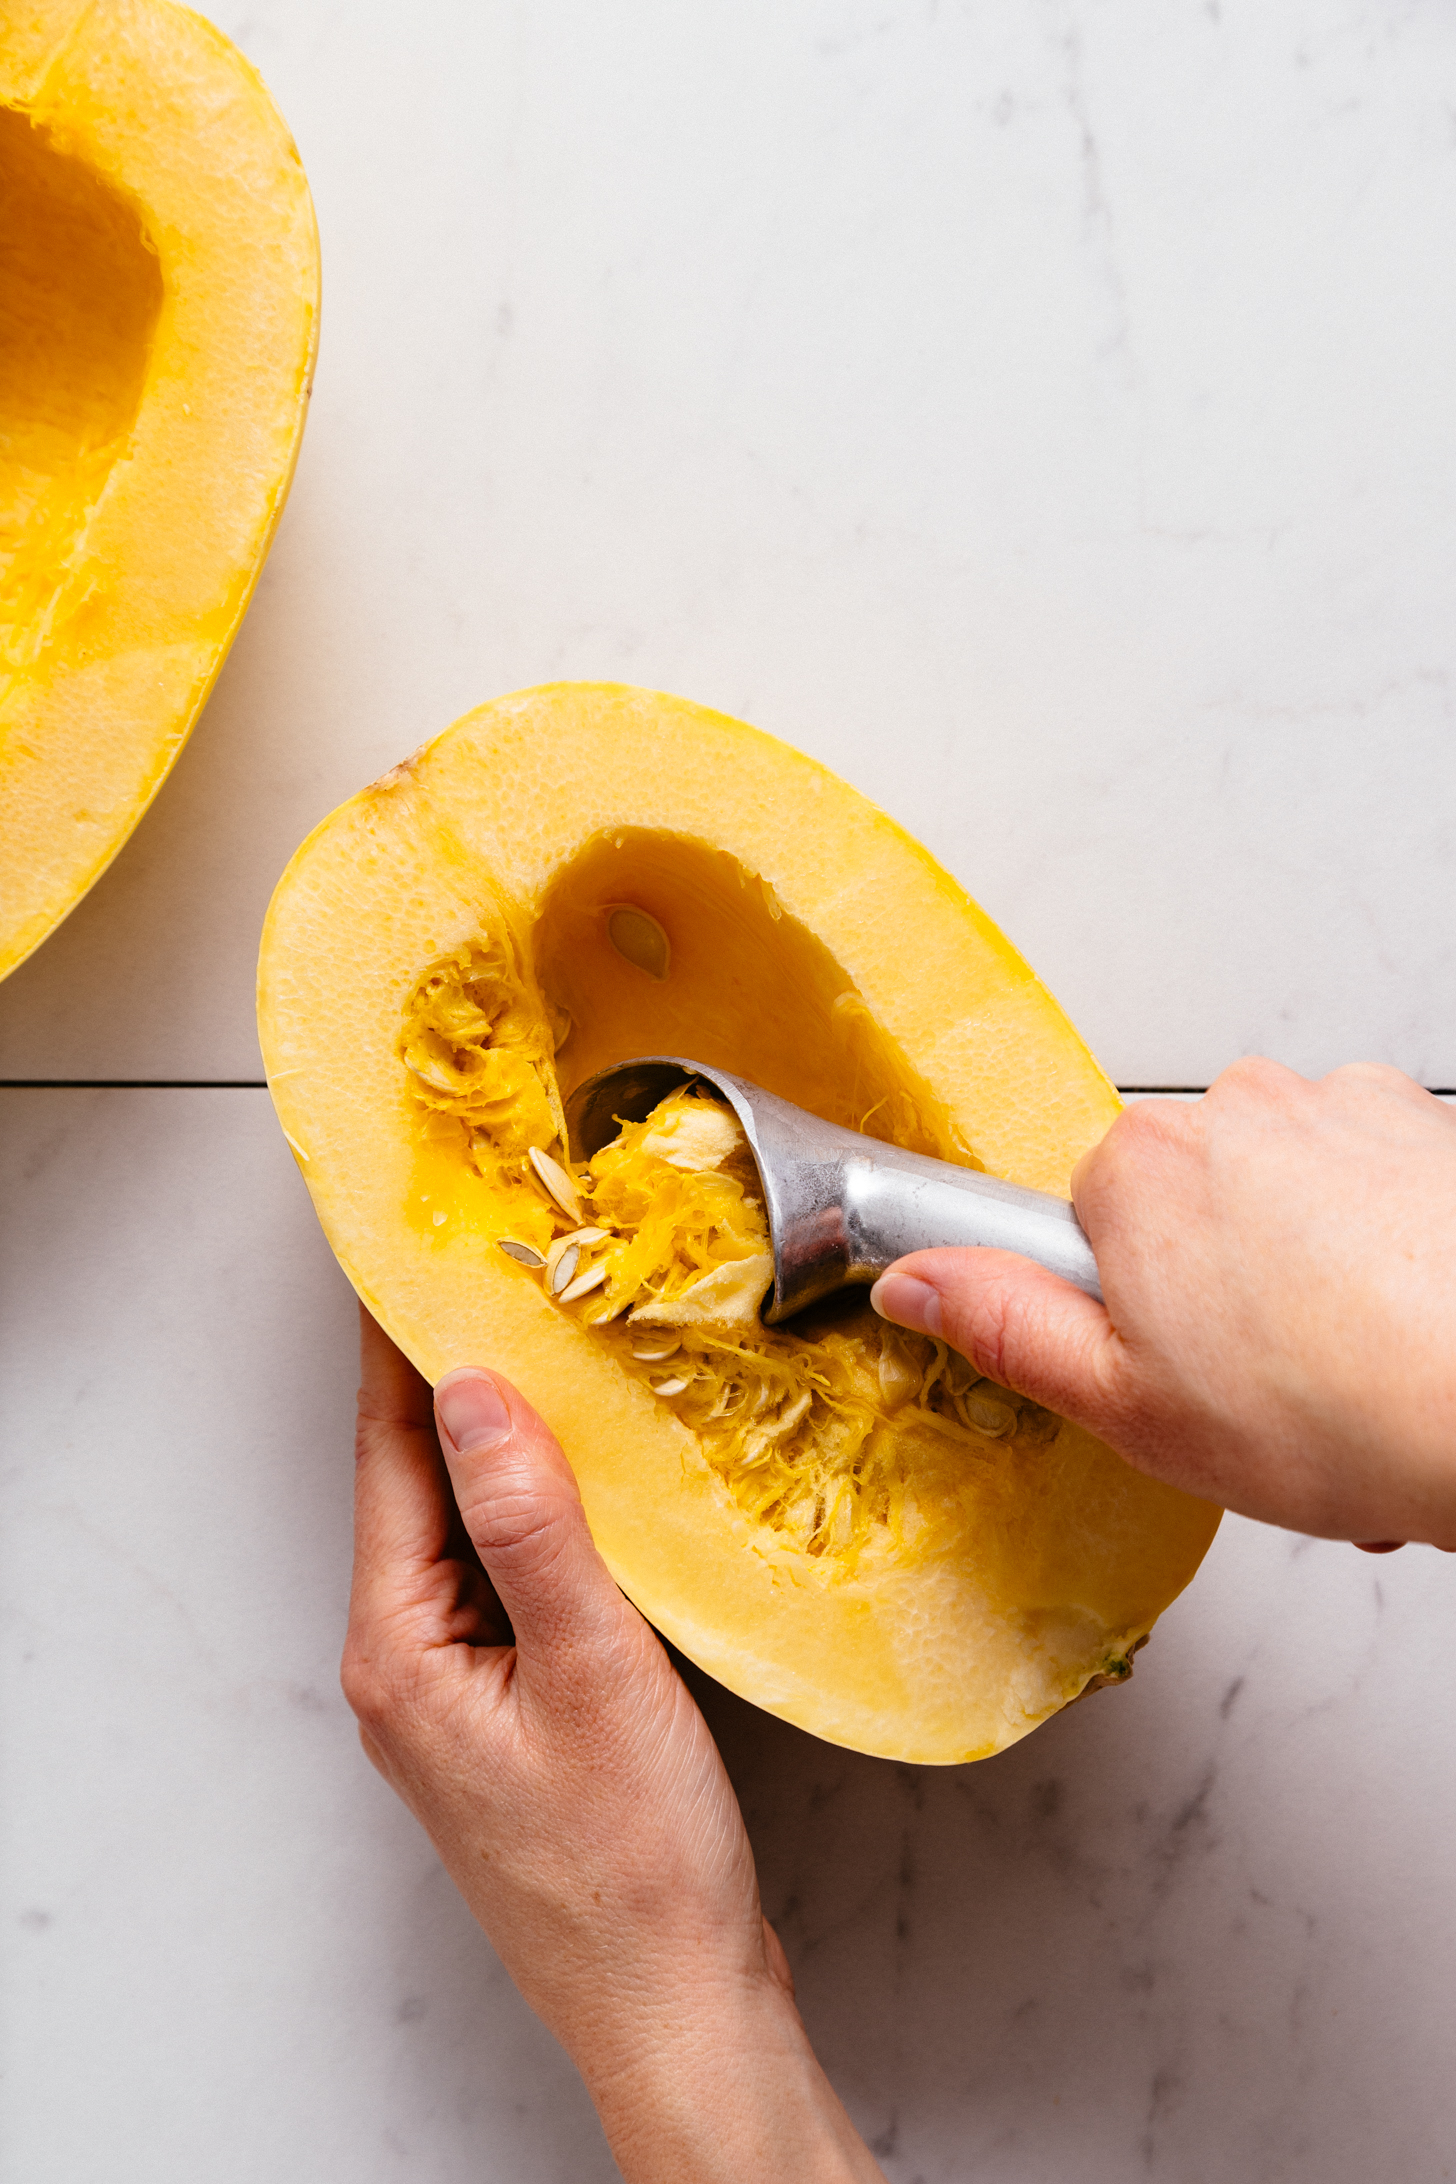 Using an ice cream scoop to remove seeds from a halved spaghetti squash